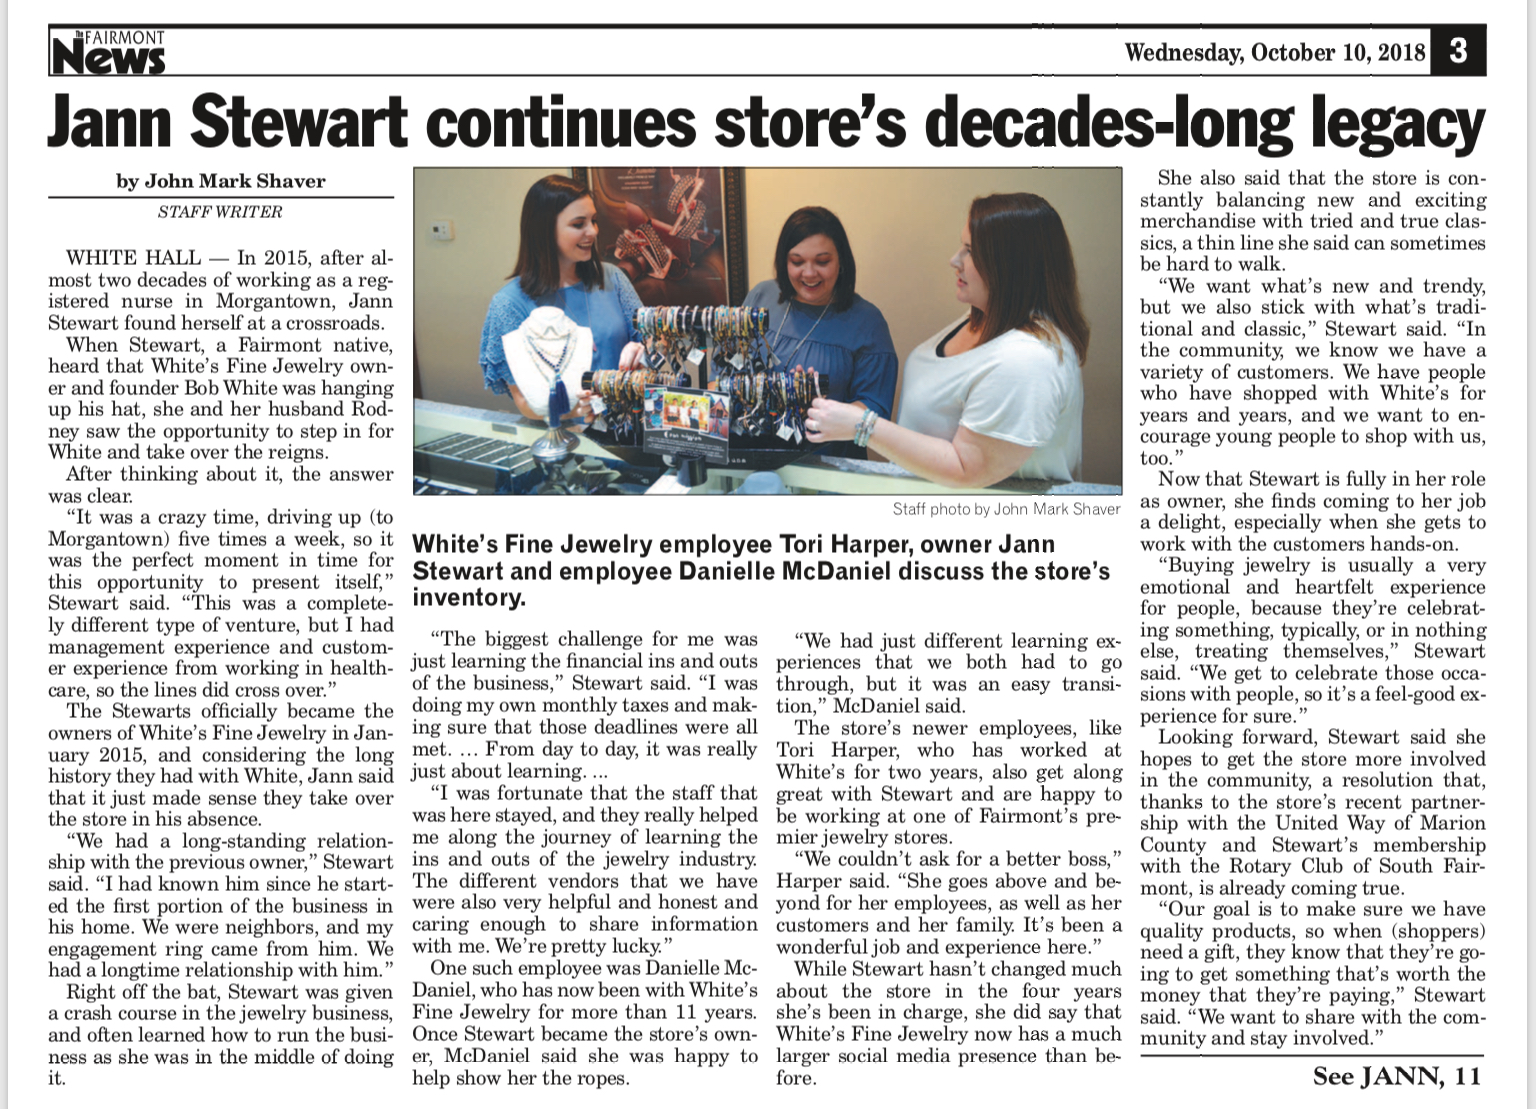 Octoober 10th fairmont news article.PNG